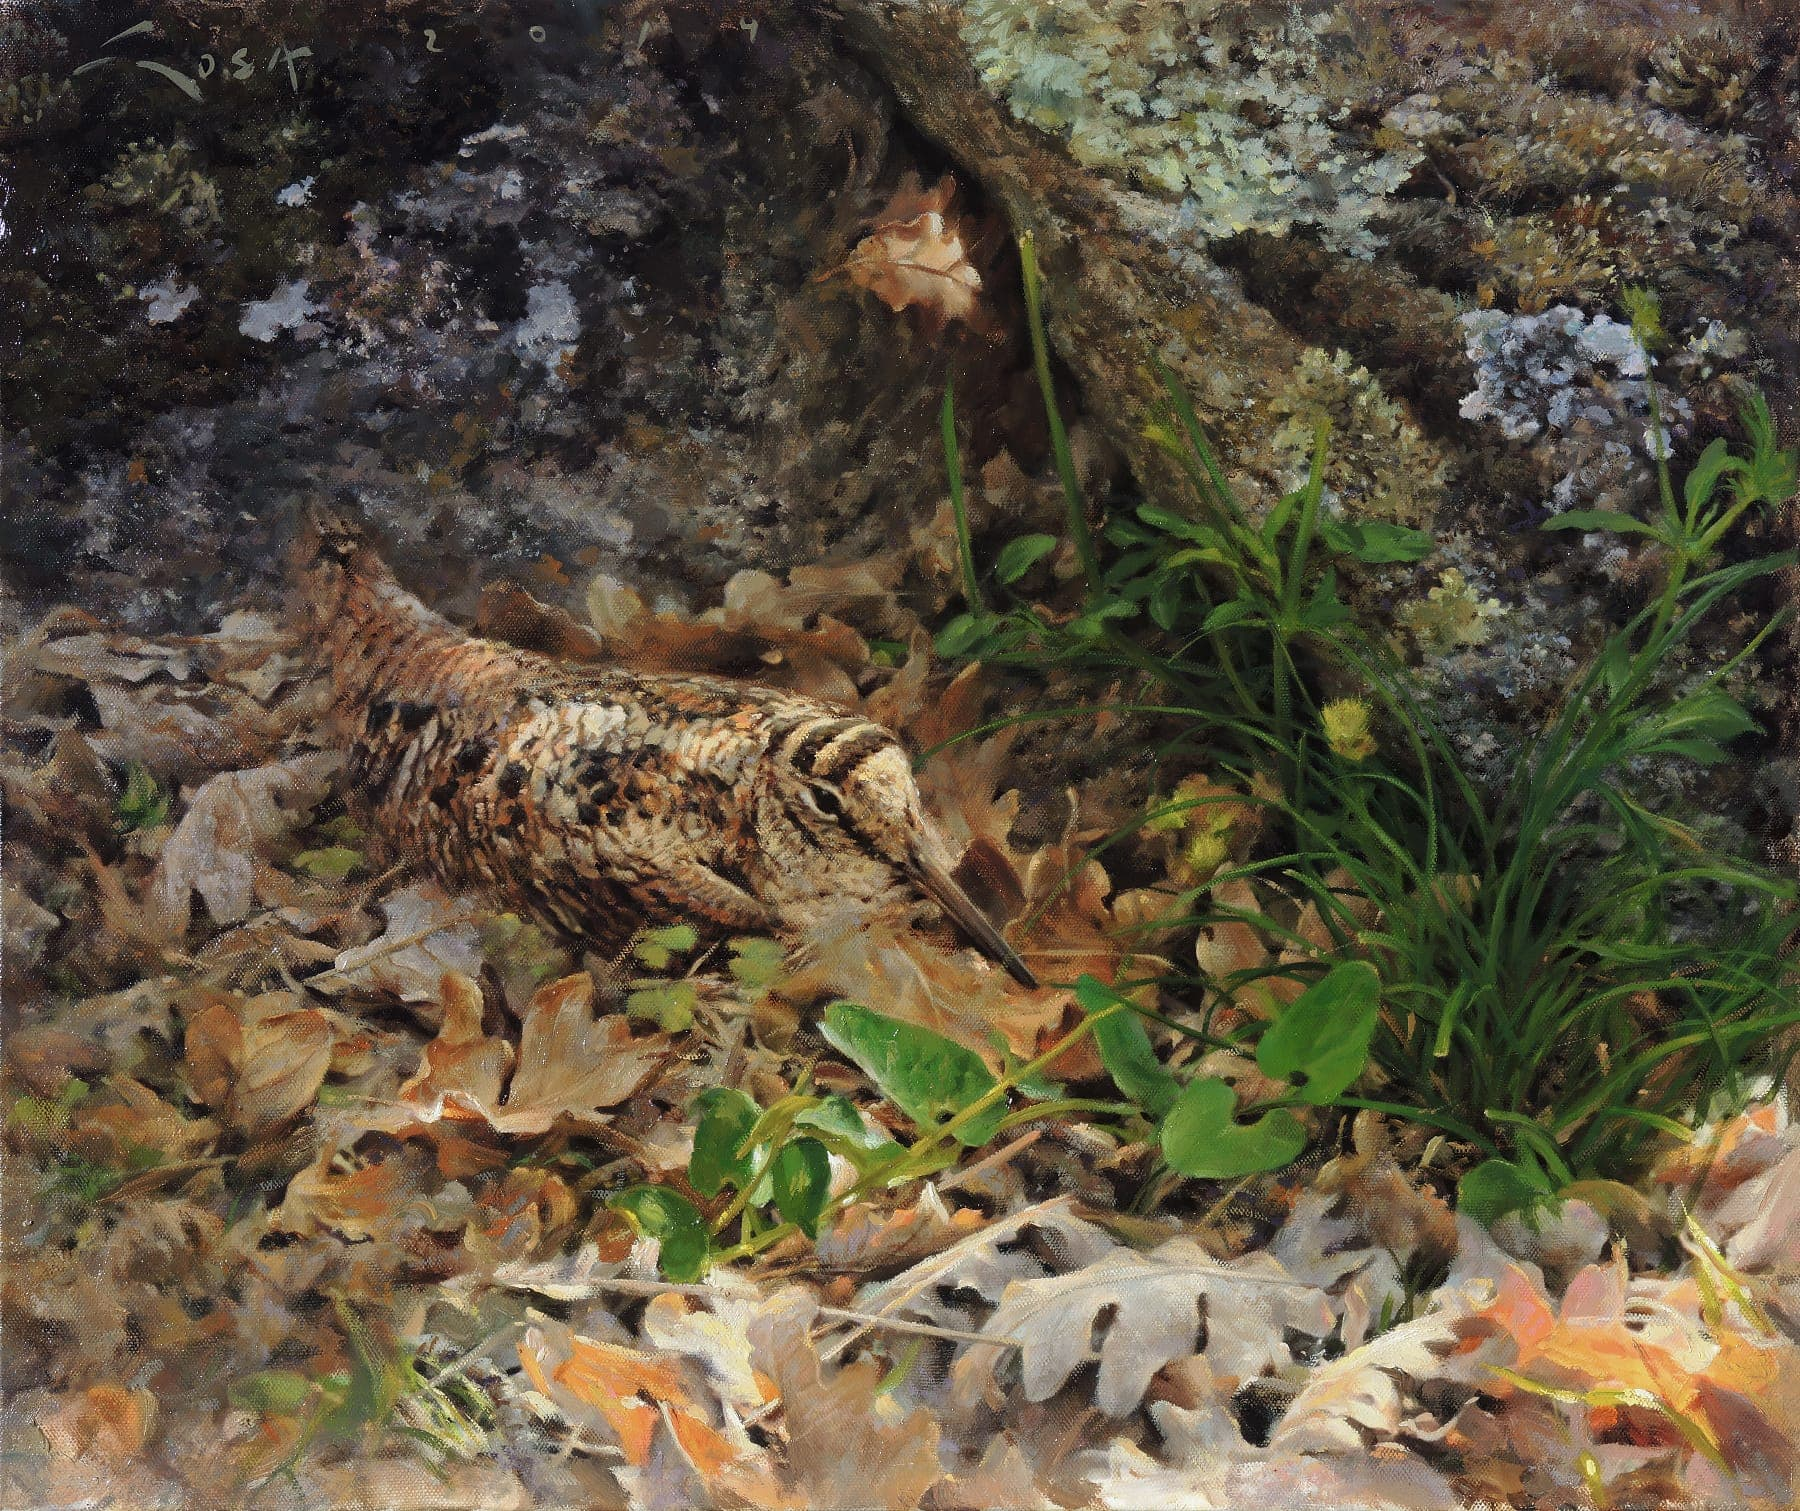 Oil Painting of a Woodcock (Scolopax rusticola)